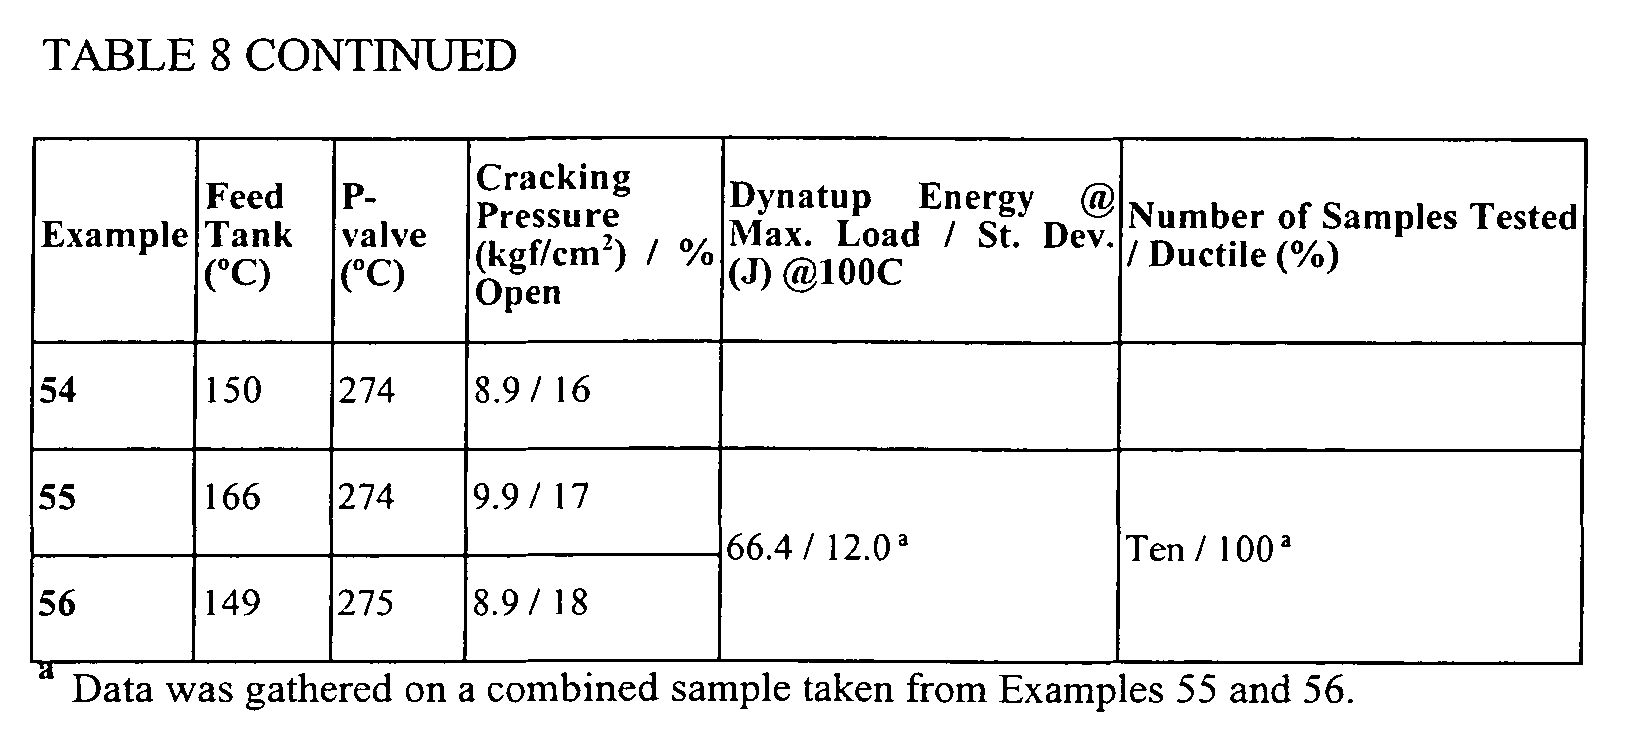 EP1510530A1 - Method of separating a polymer from a solvent